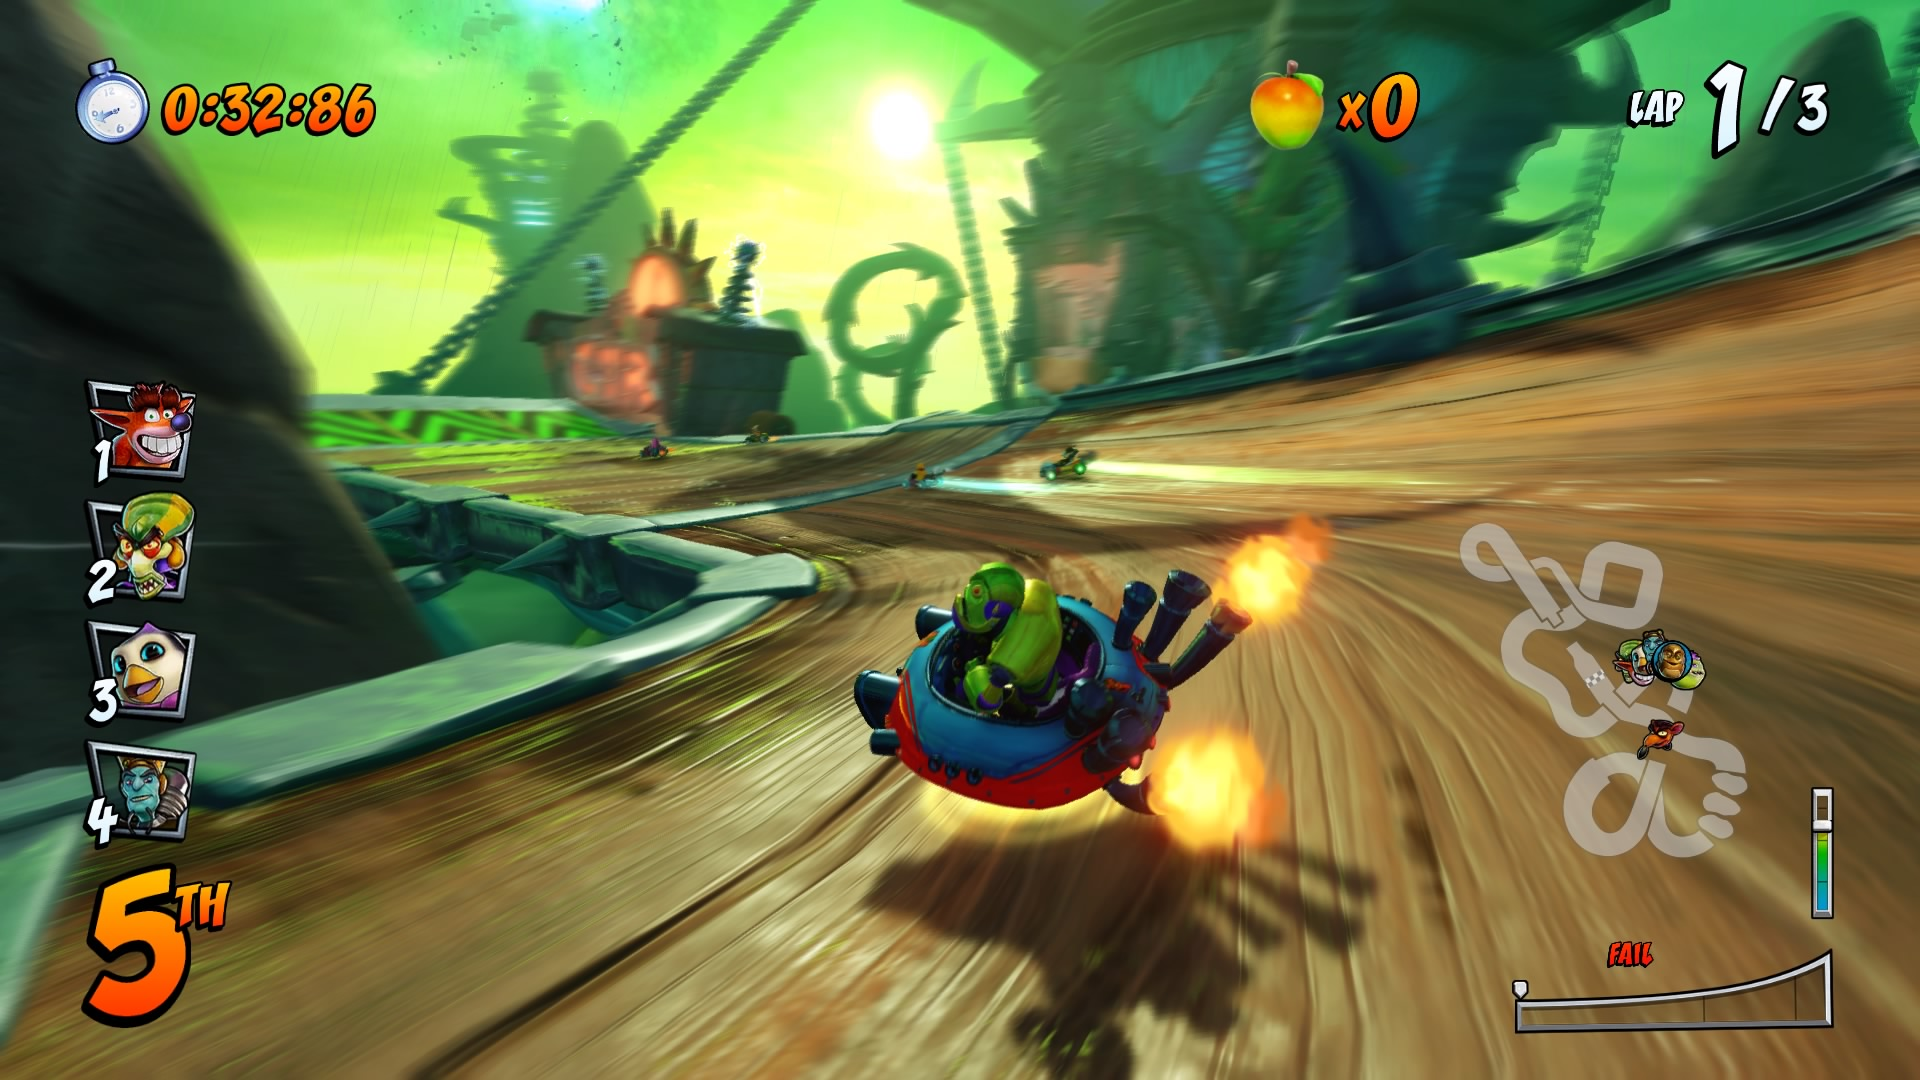 Crash Team Racing Nitro-Fueled is getting microtransactions